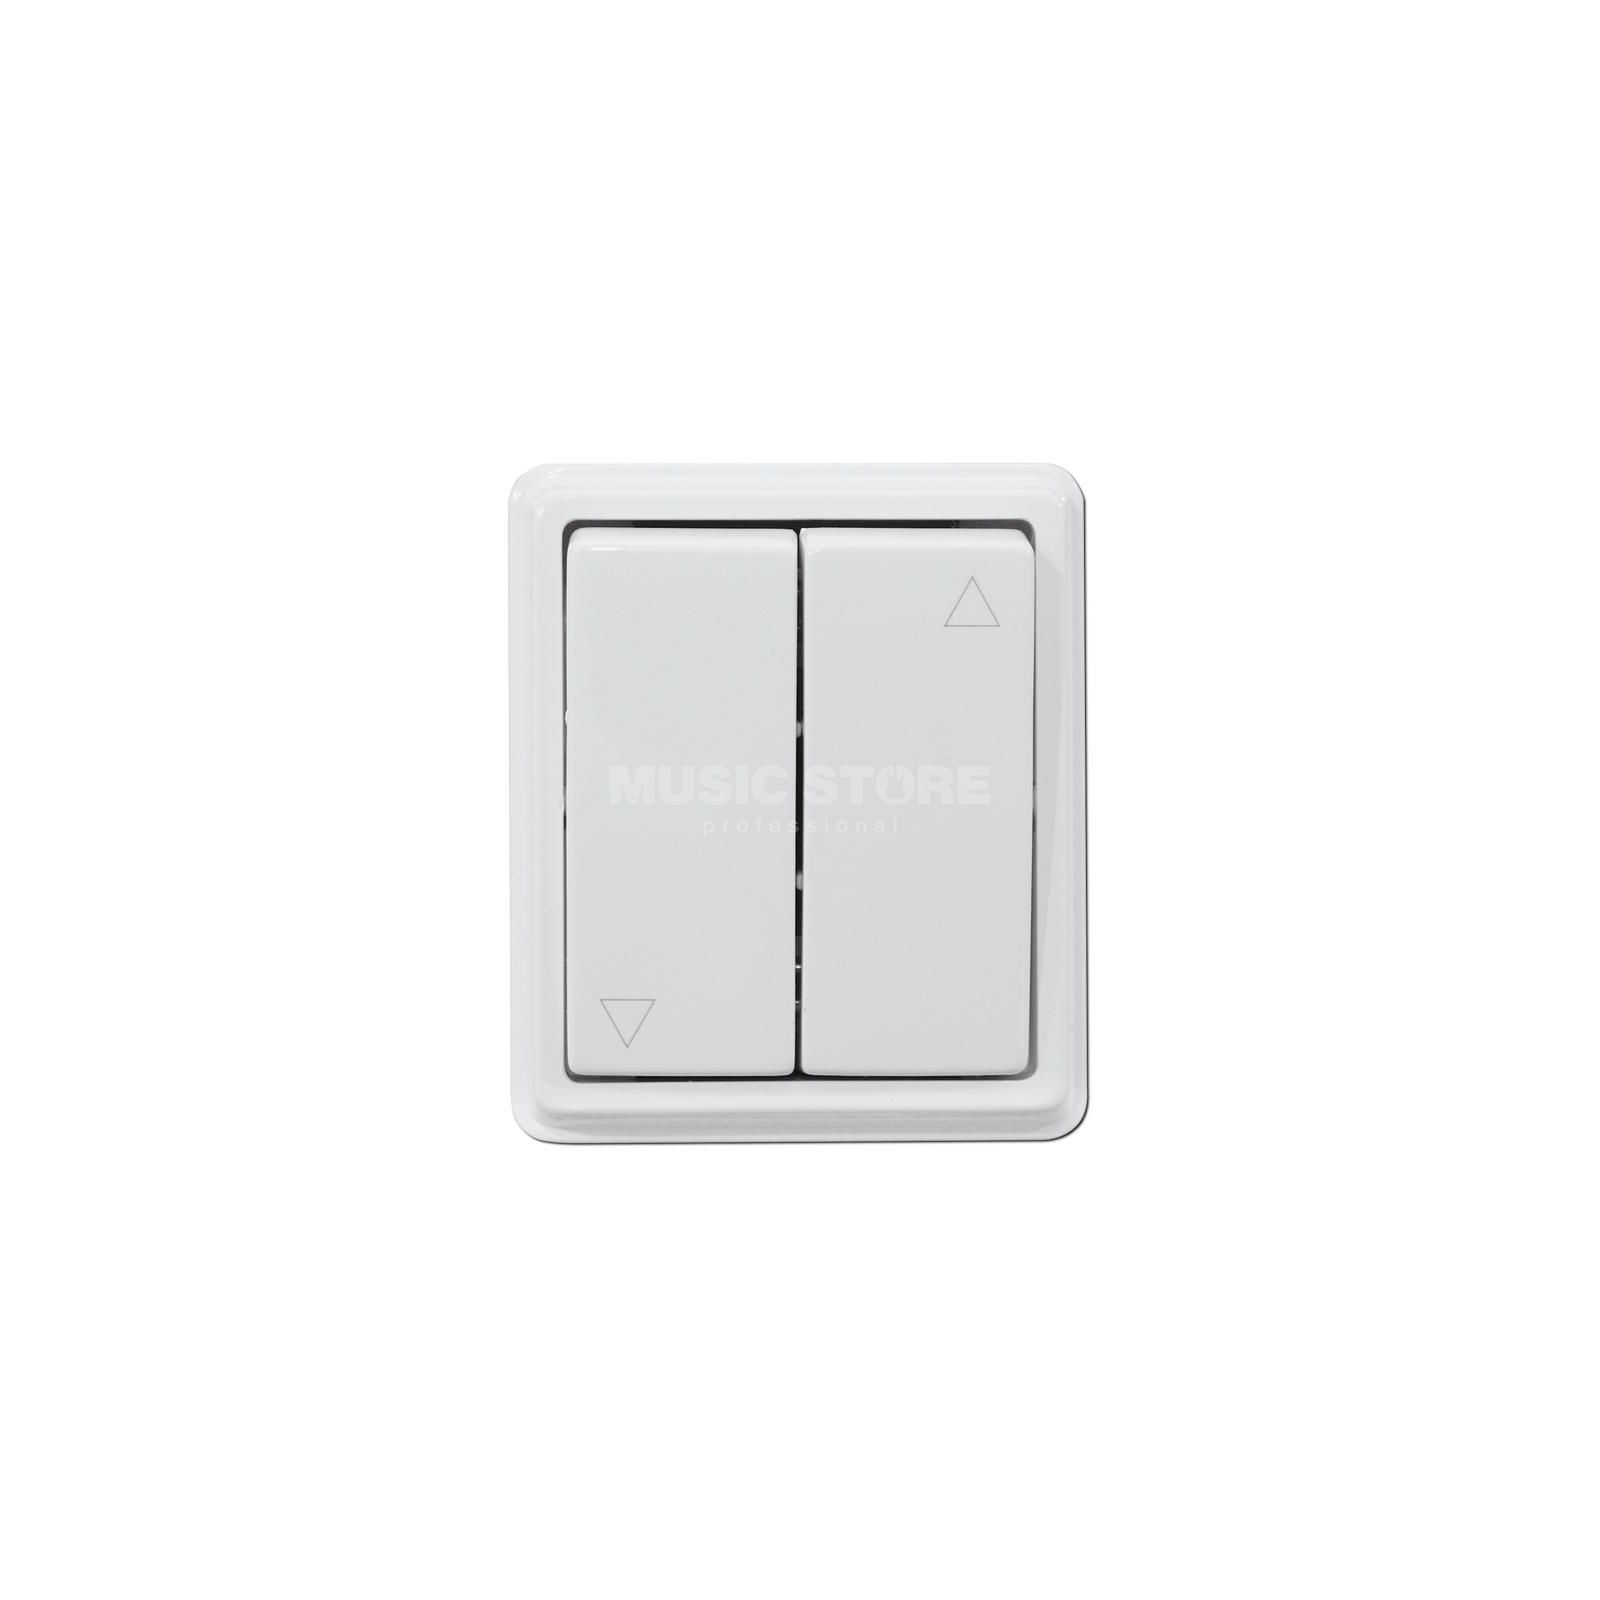 Eurolite Switch (up/down) for projection screens Produktbillede